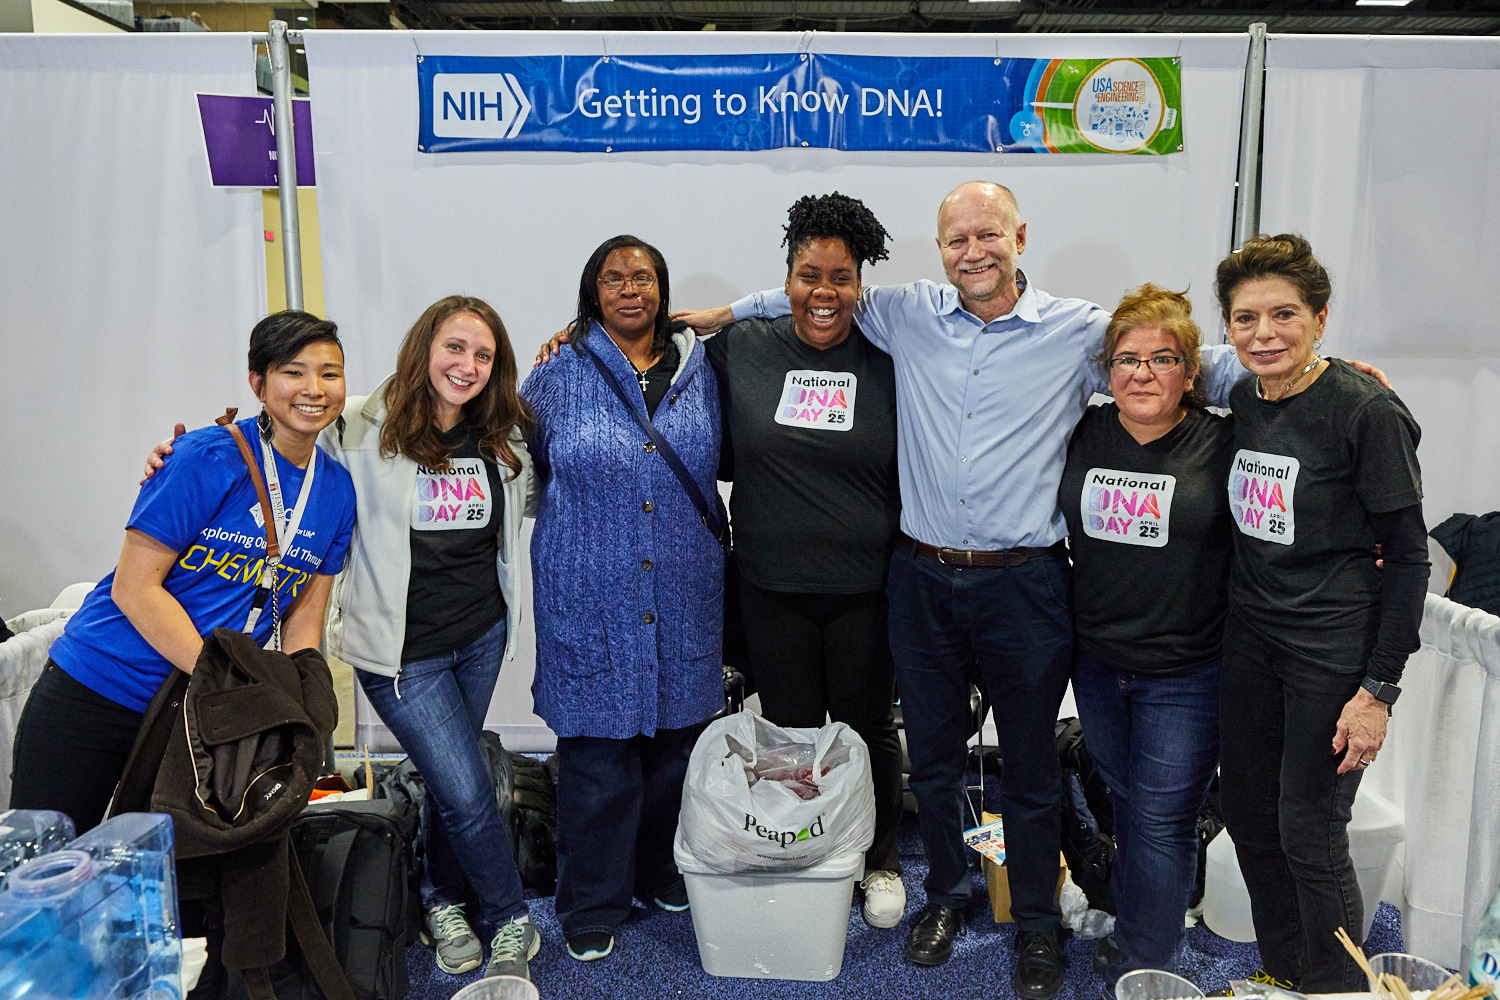 NHGRI Volunteers at the USA Science and Engineering Festival